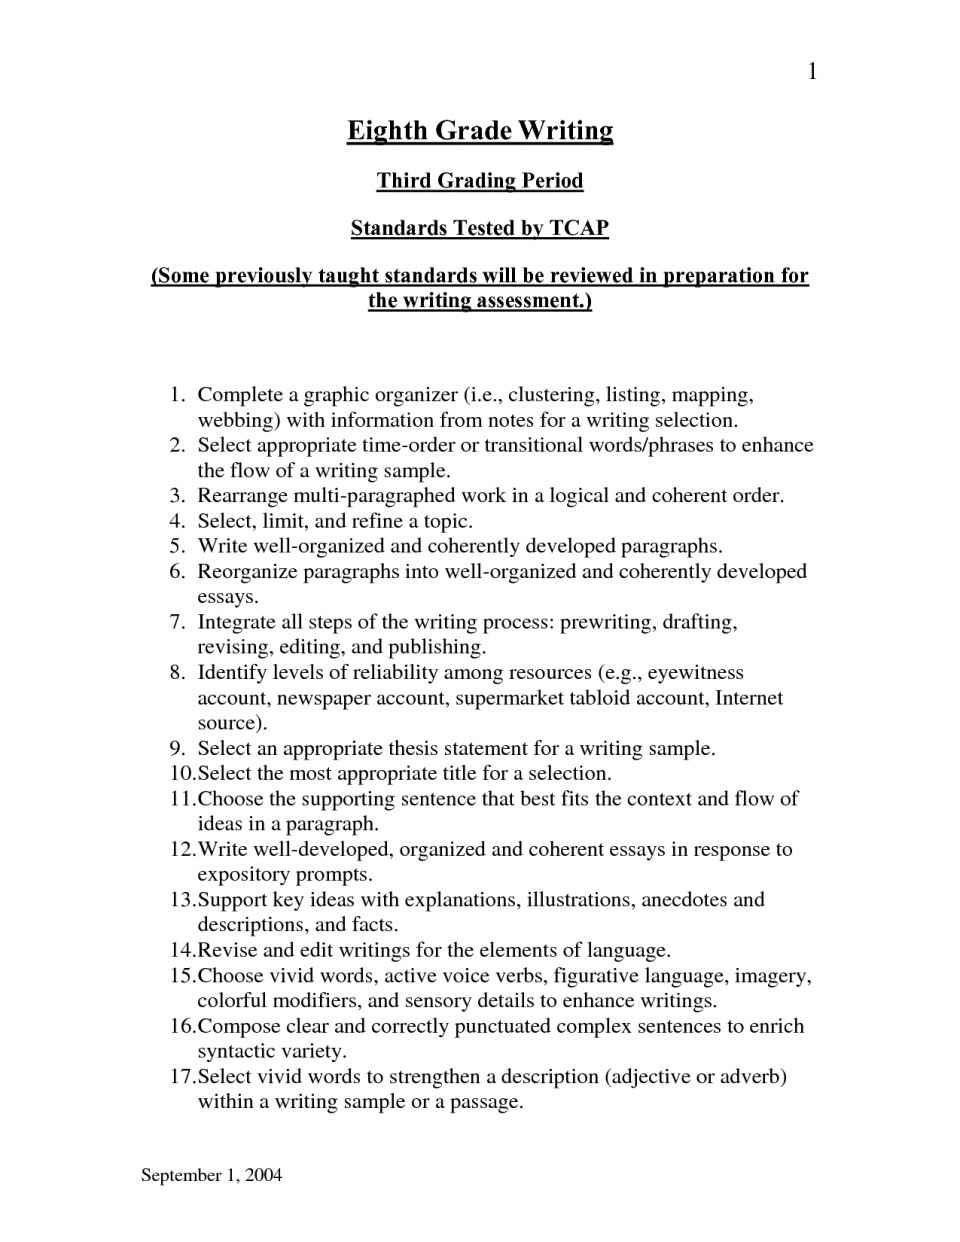 001 Expository Essay Writing Prompts For High School 1088622 Topics Awesome 7th Grade Examples College 4th 960